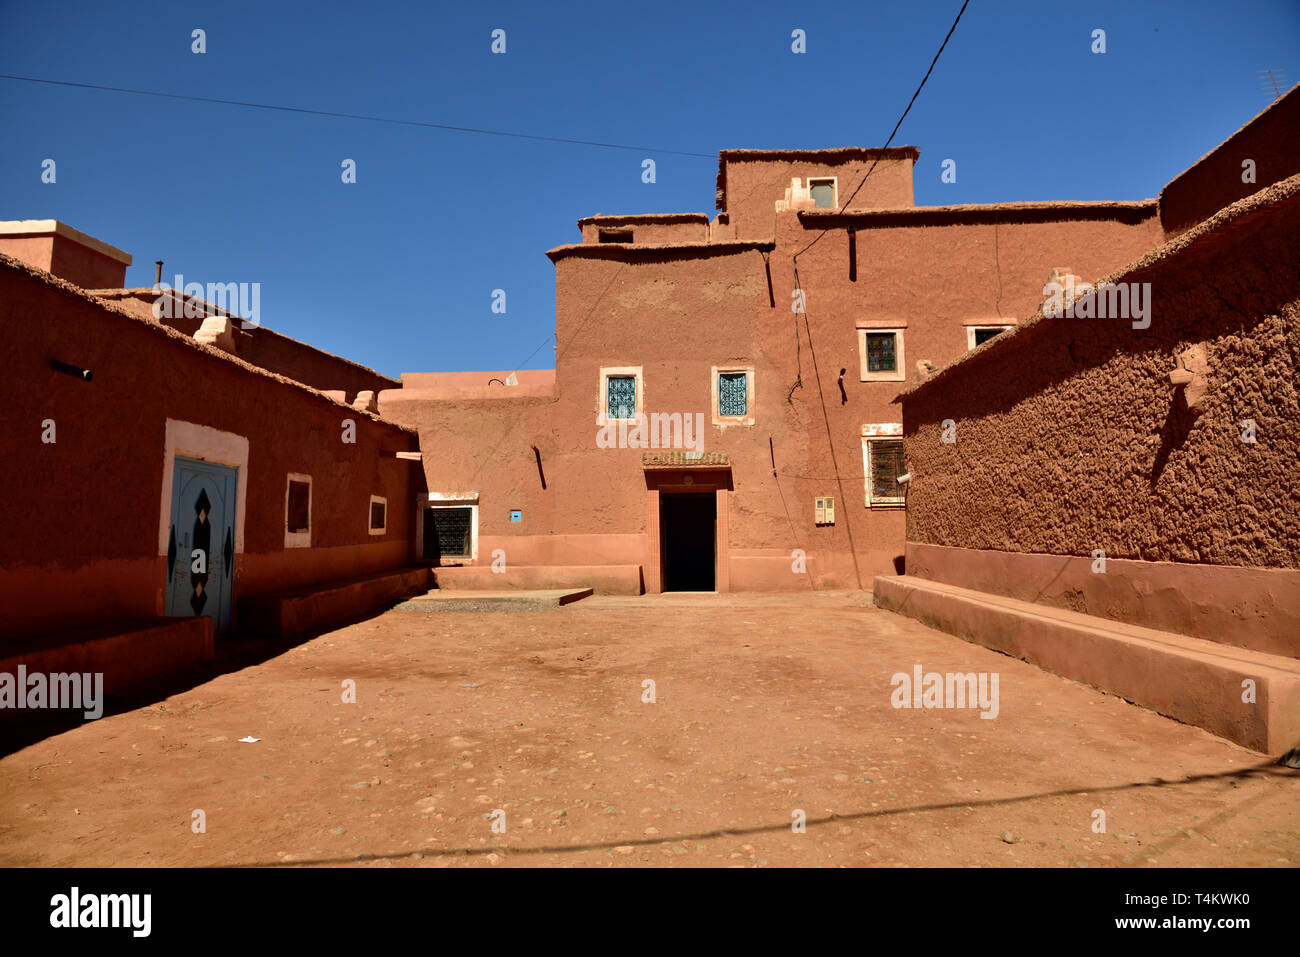 Most citizens living in the region now live in more modern housing in a nearby village, but there are four families who still live in the ancient city - Stock Image